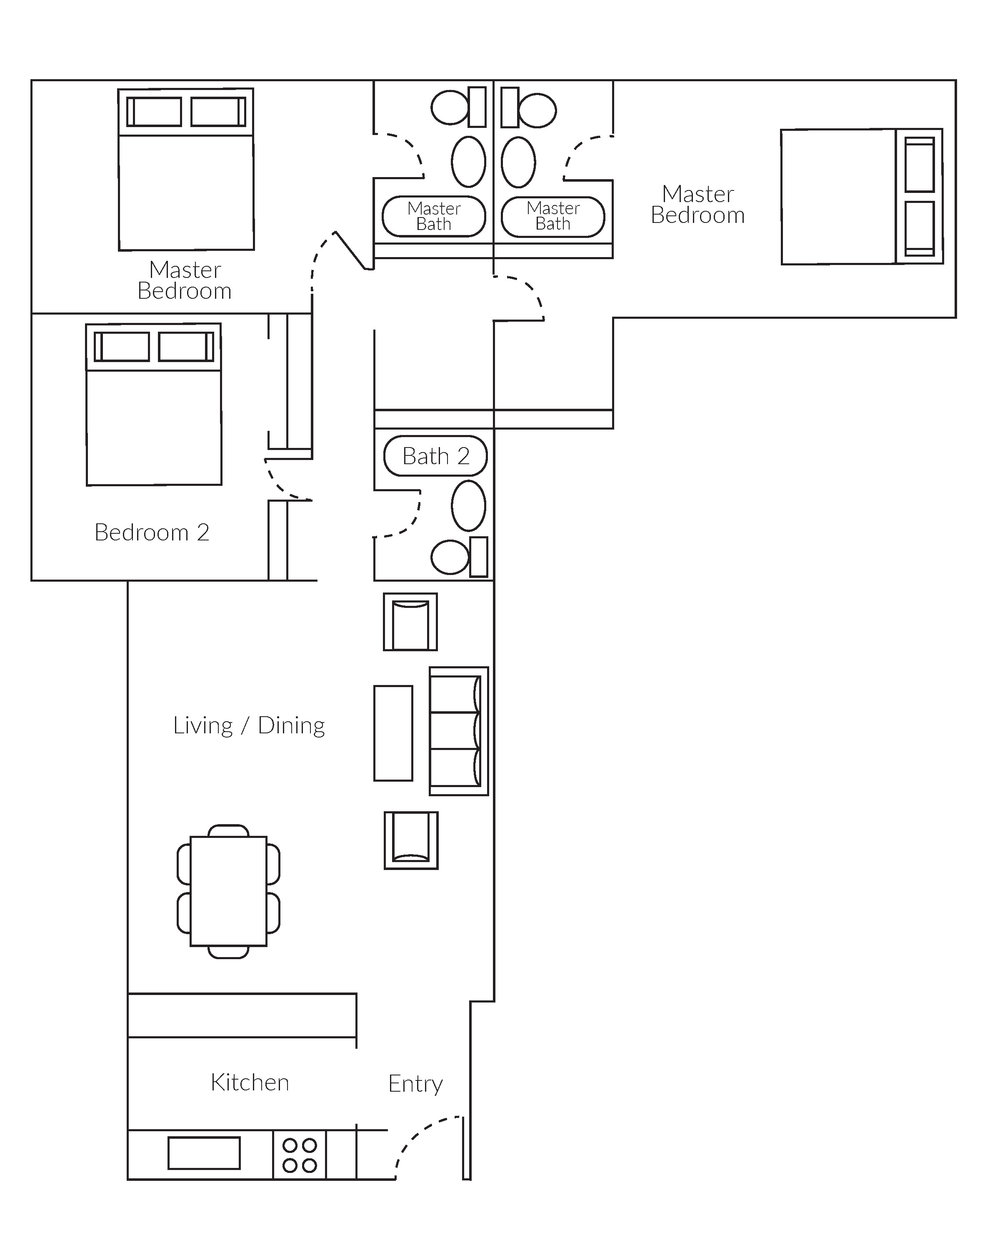 3 bedroom, 3 bathrom high-rise apartment